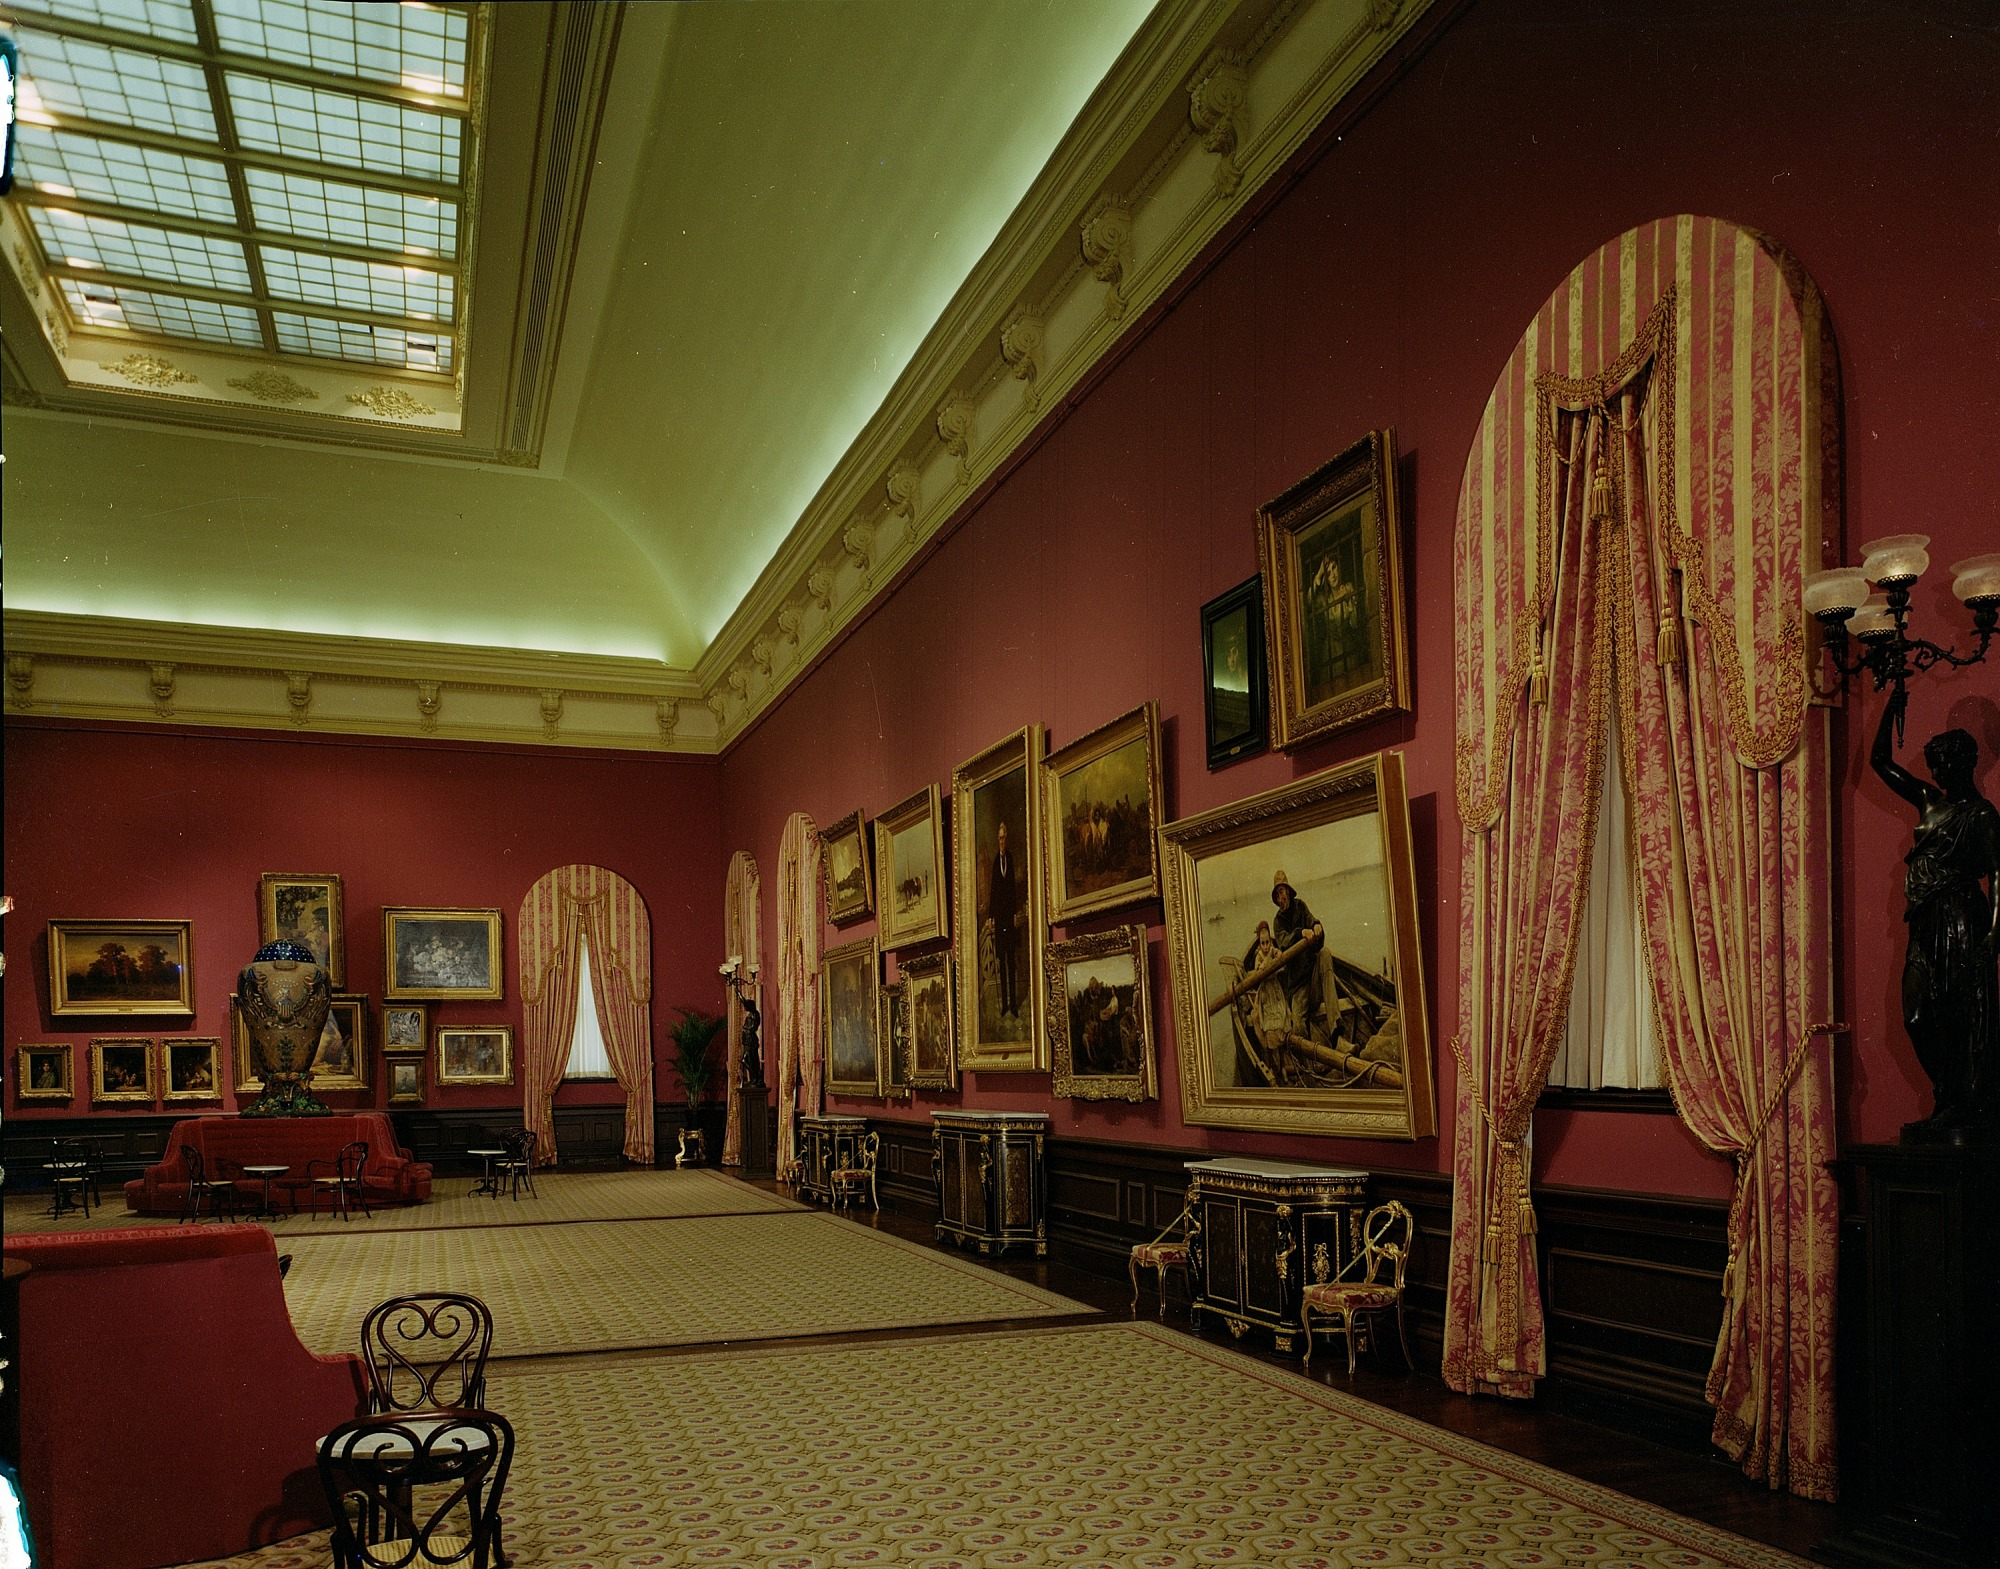 Grand Salon, Renwick Gallery, by Unknown, 1972, Smithsonian Archives - History Div, 72-4230.